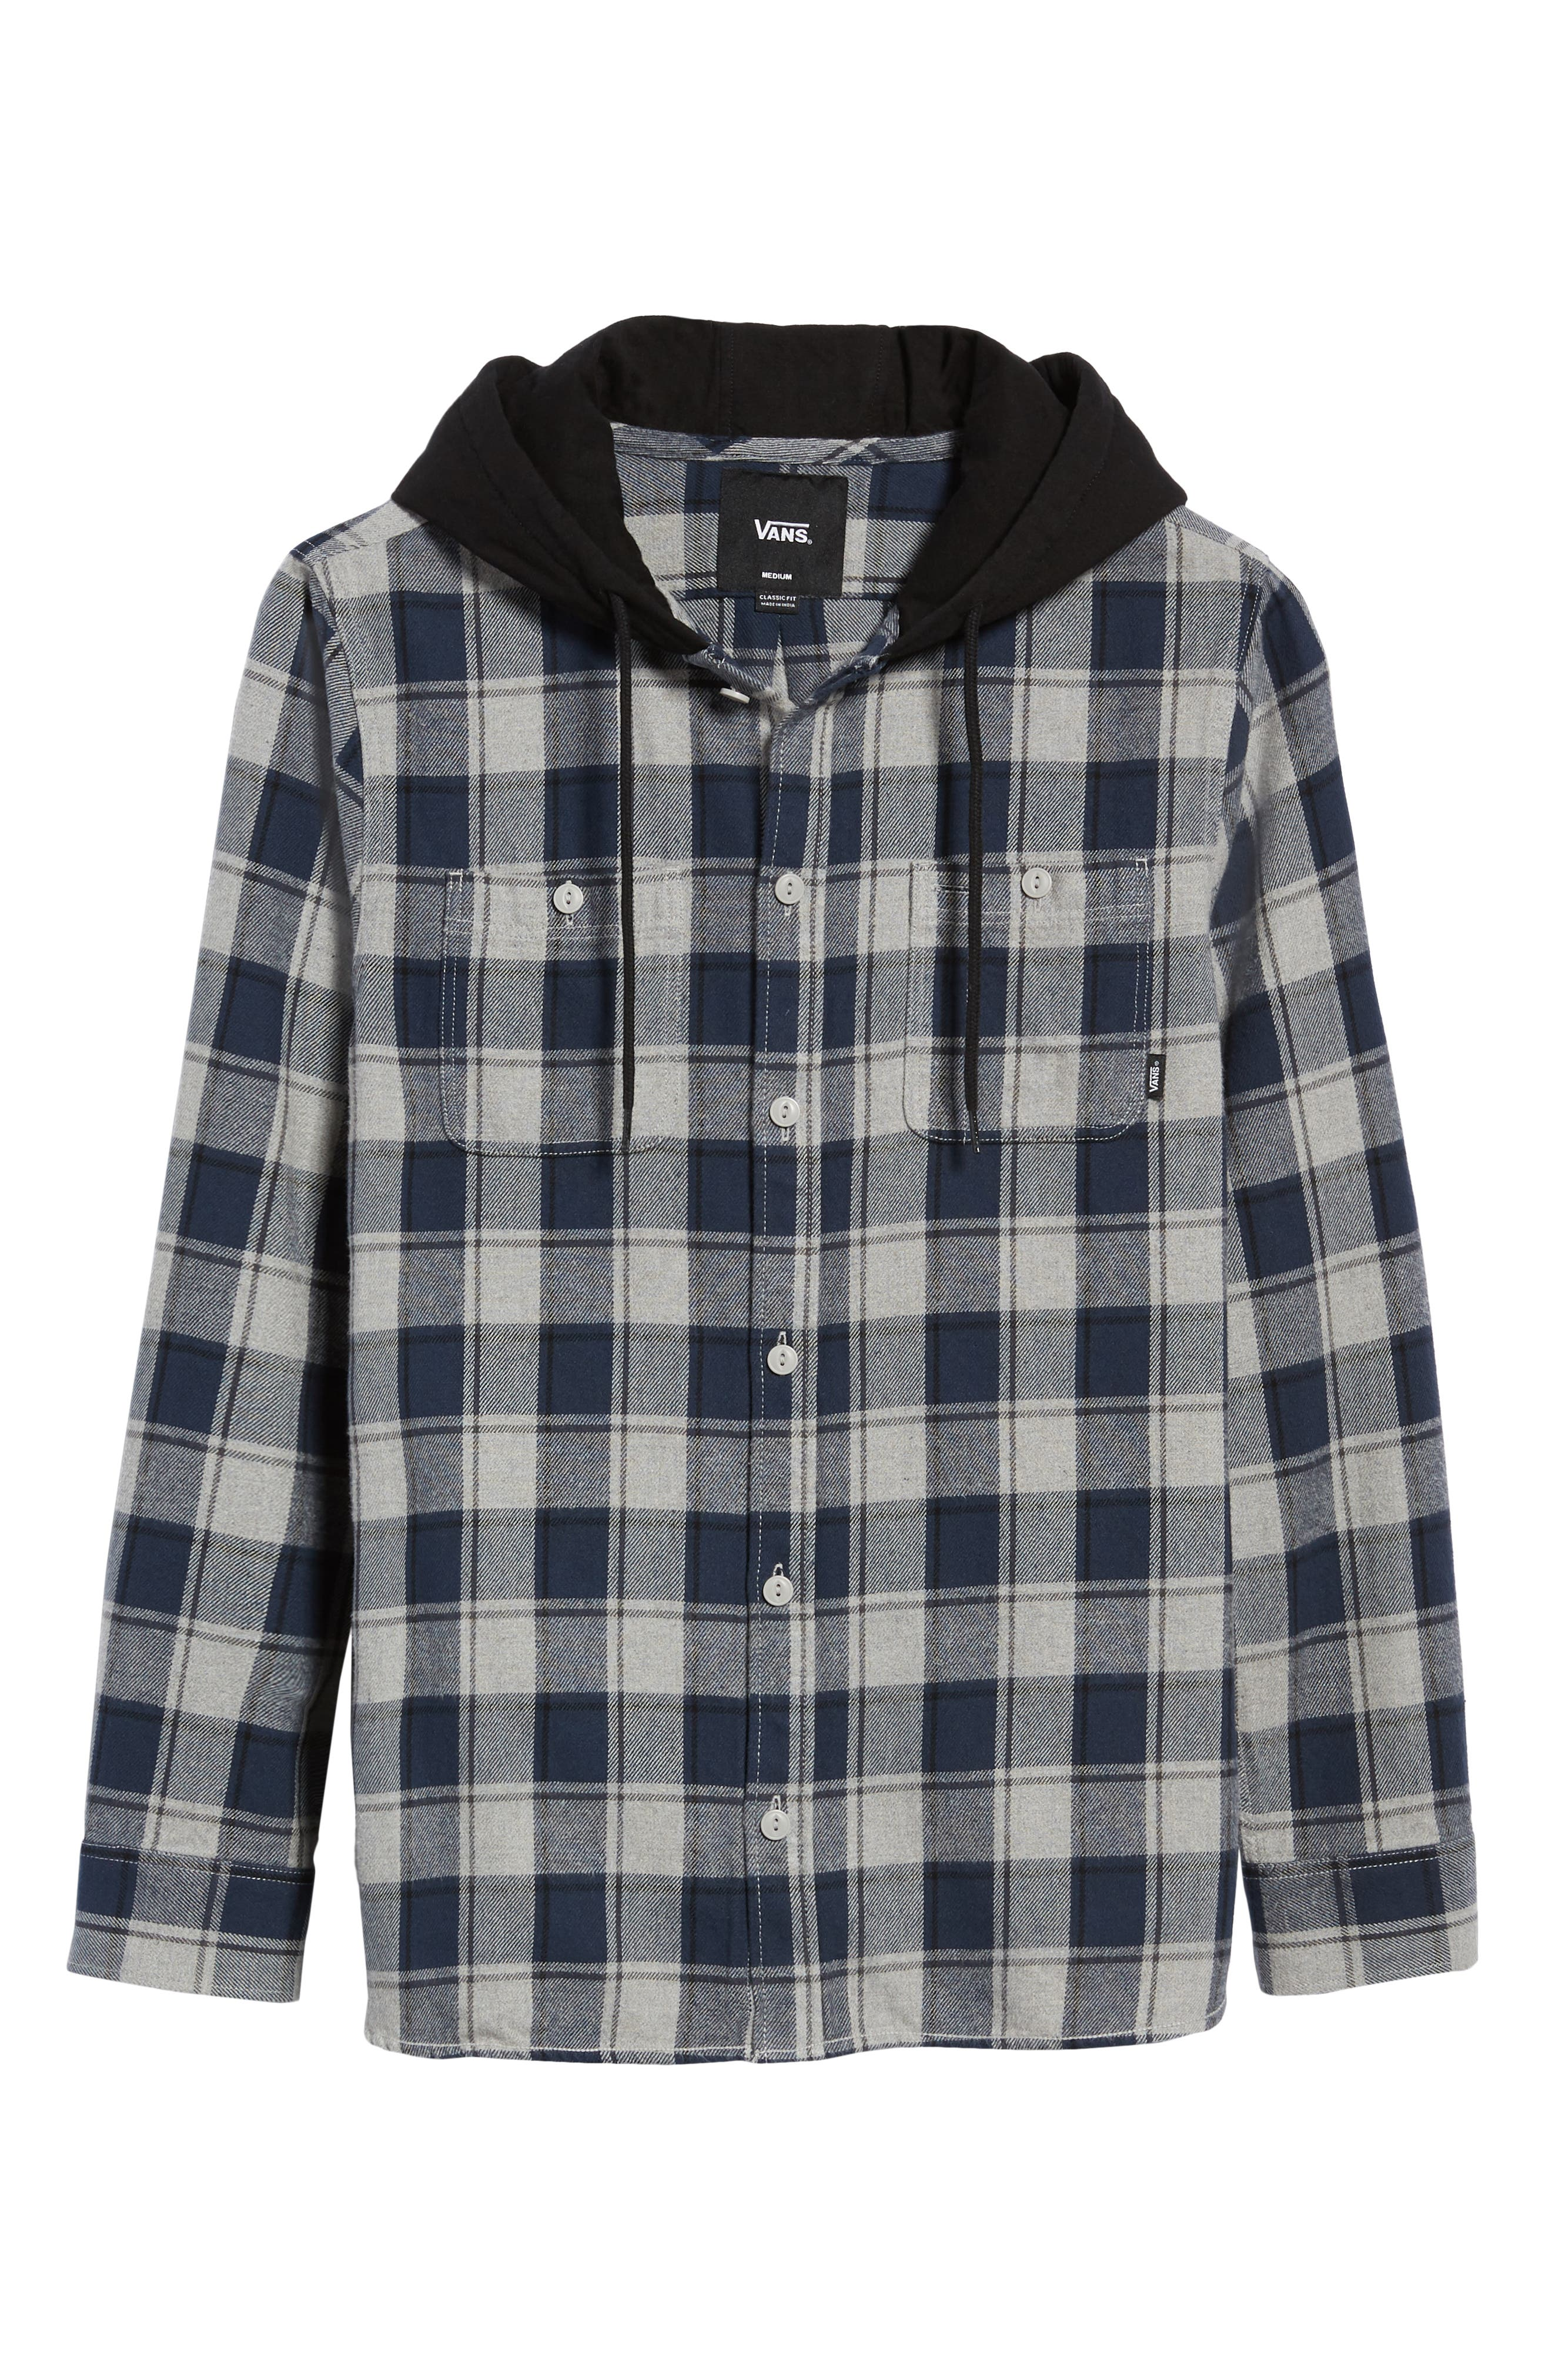 Lopes Hooded Plaid Flannel Jacket,                             Alternate thumbnail 6, color,                             DRESS BLUES/ GREY HEATHER